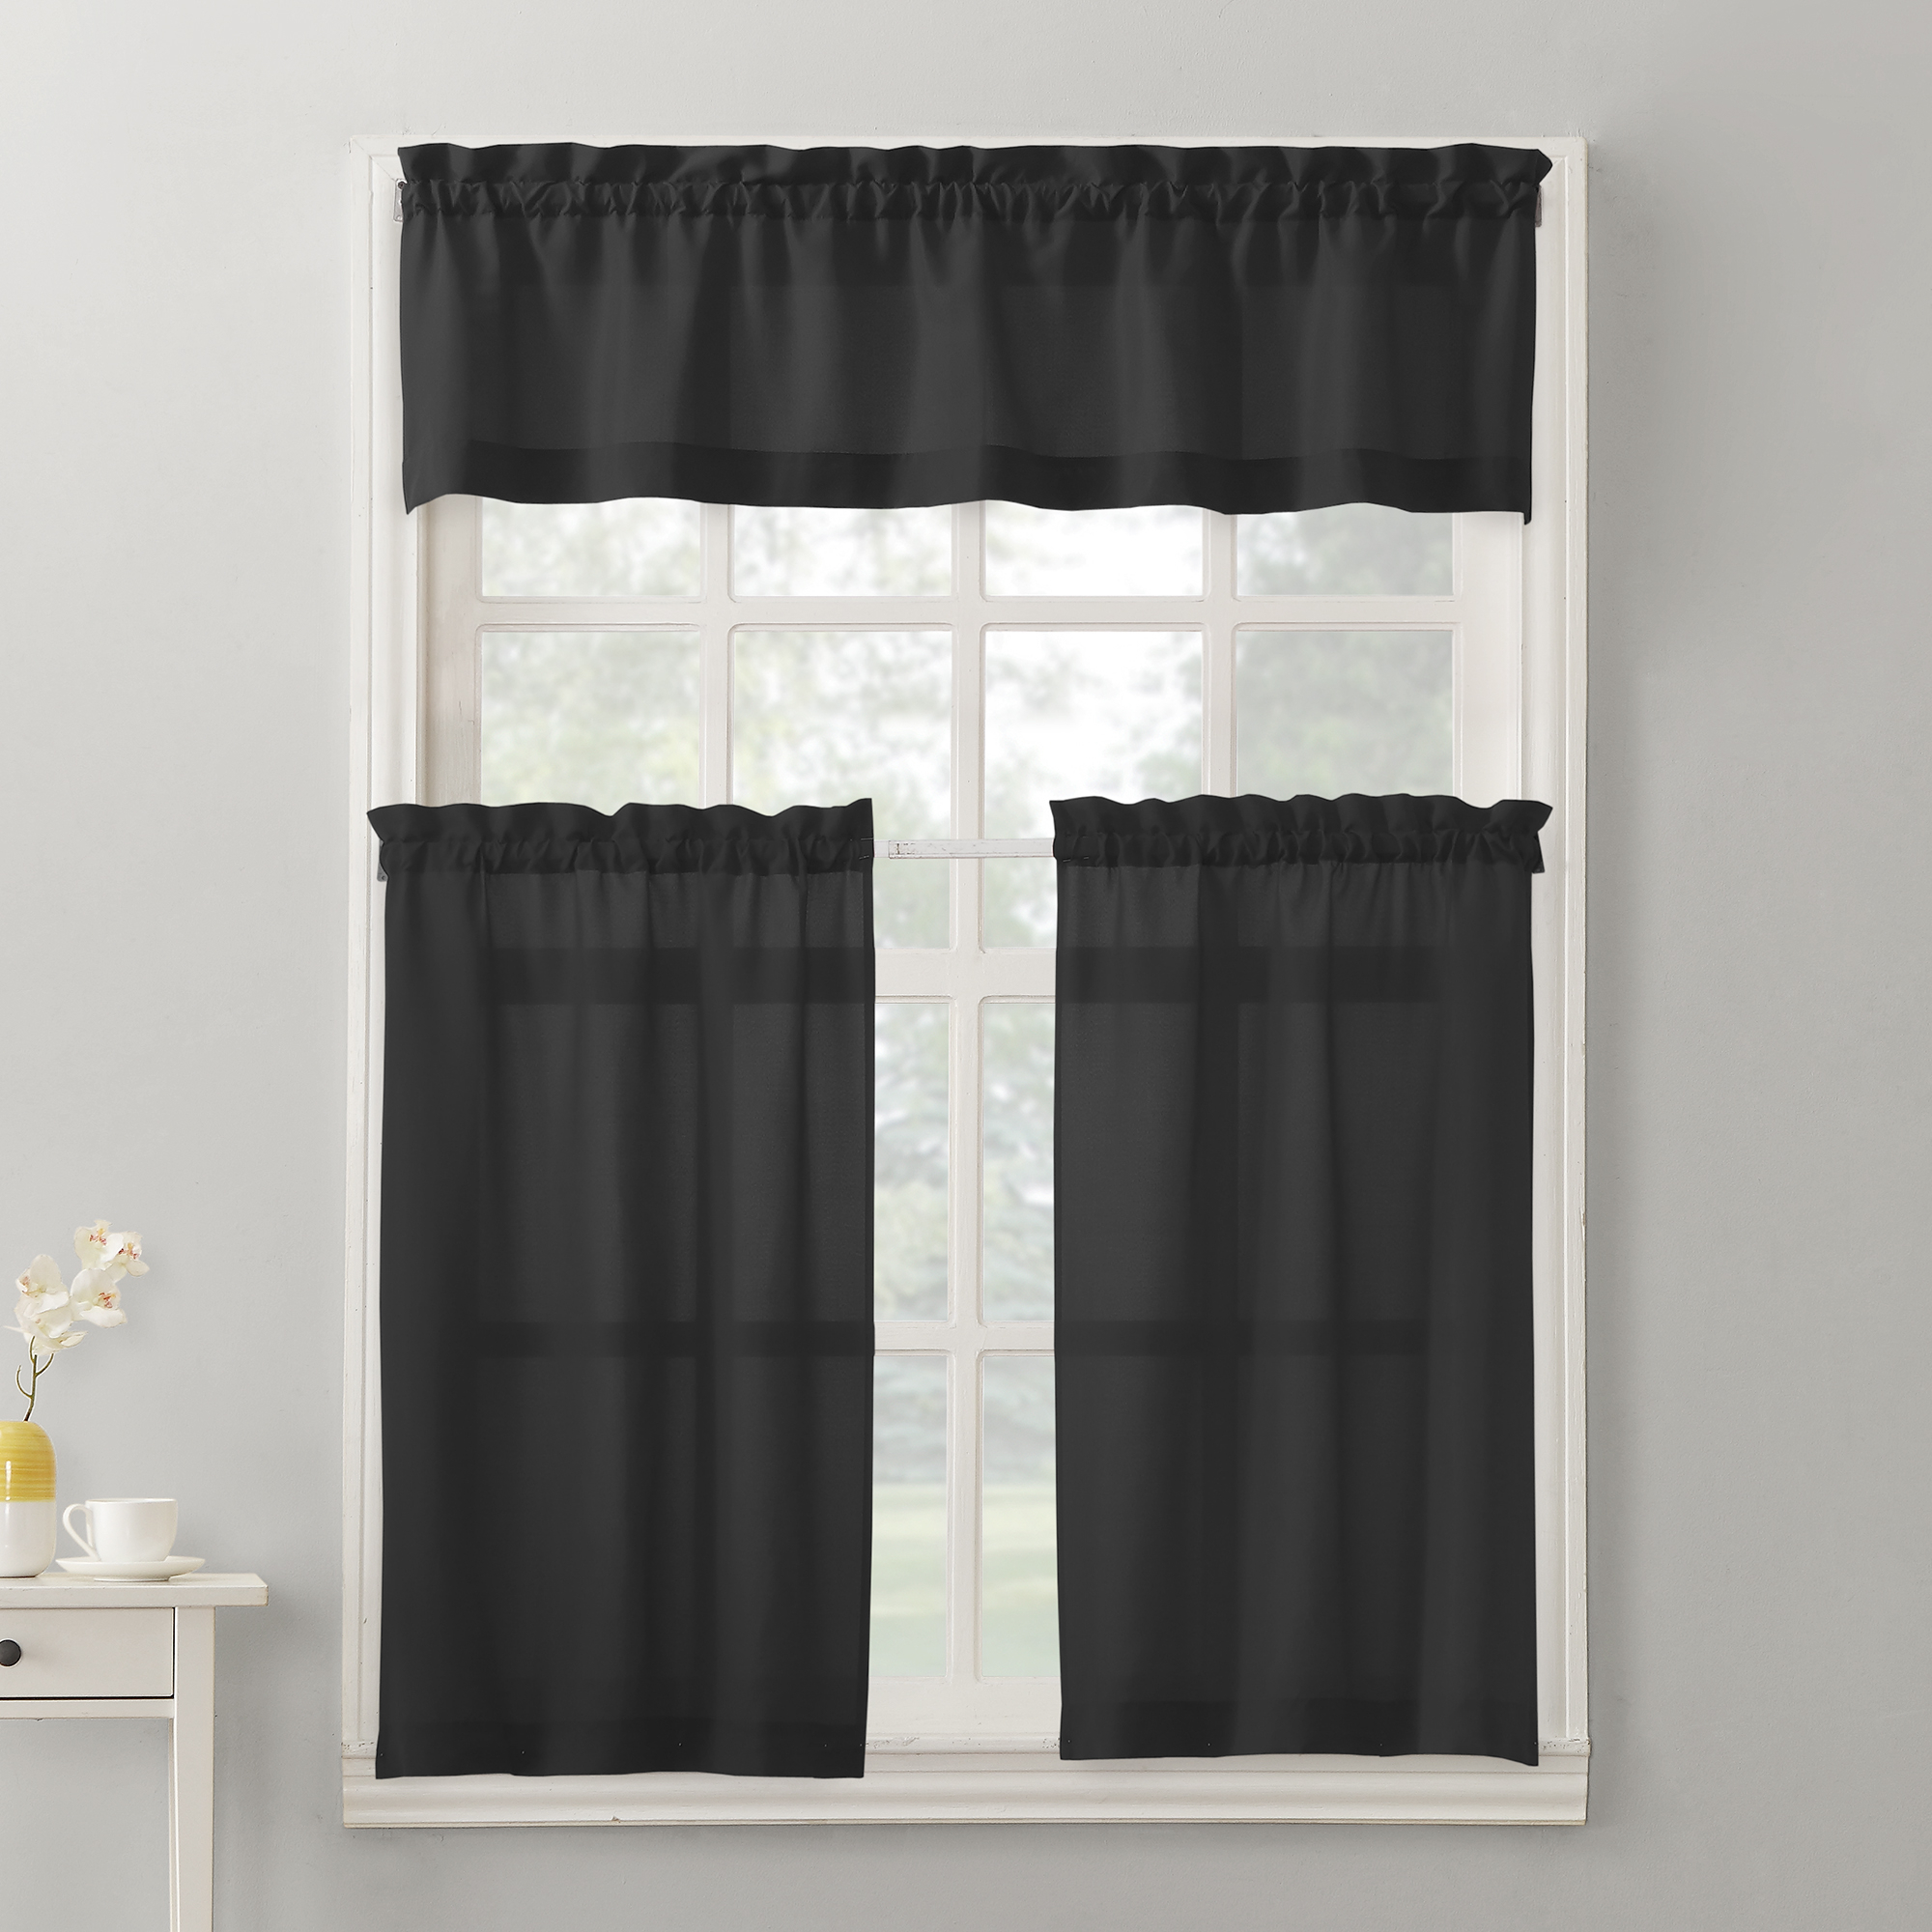 Preferred Scroll Leaf 3 Piece Curtain Tier And Valance Sets With Regard To Mainstays Solid 3 Piece Kitchen Curtain Tier And Valance Set (View 11 of 20)